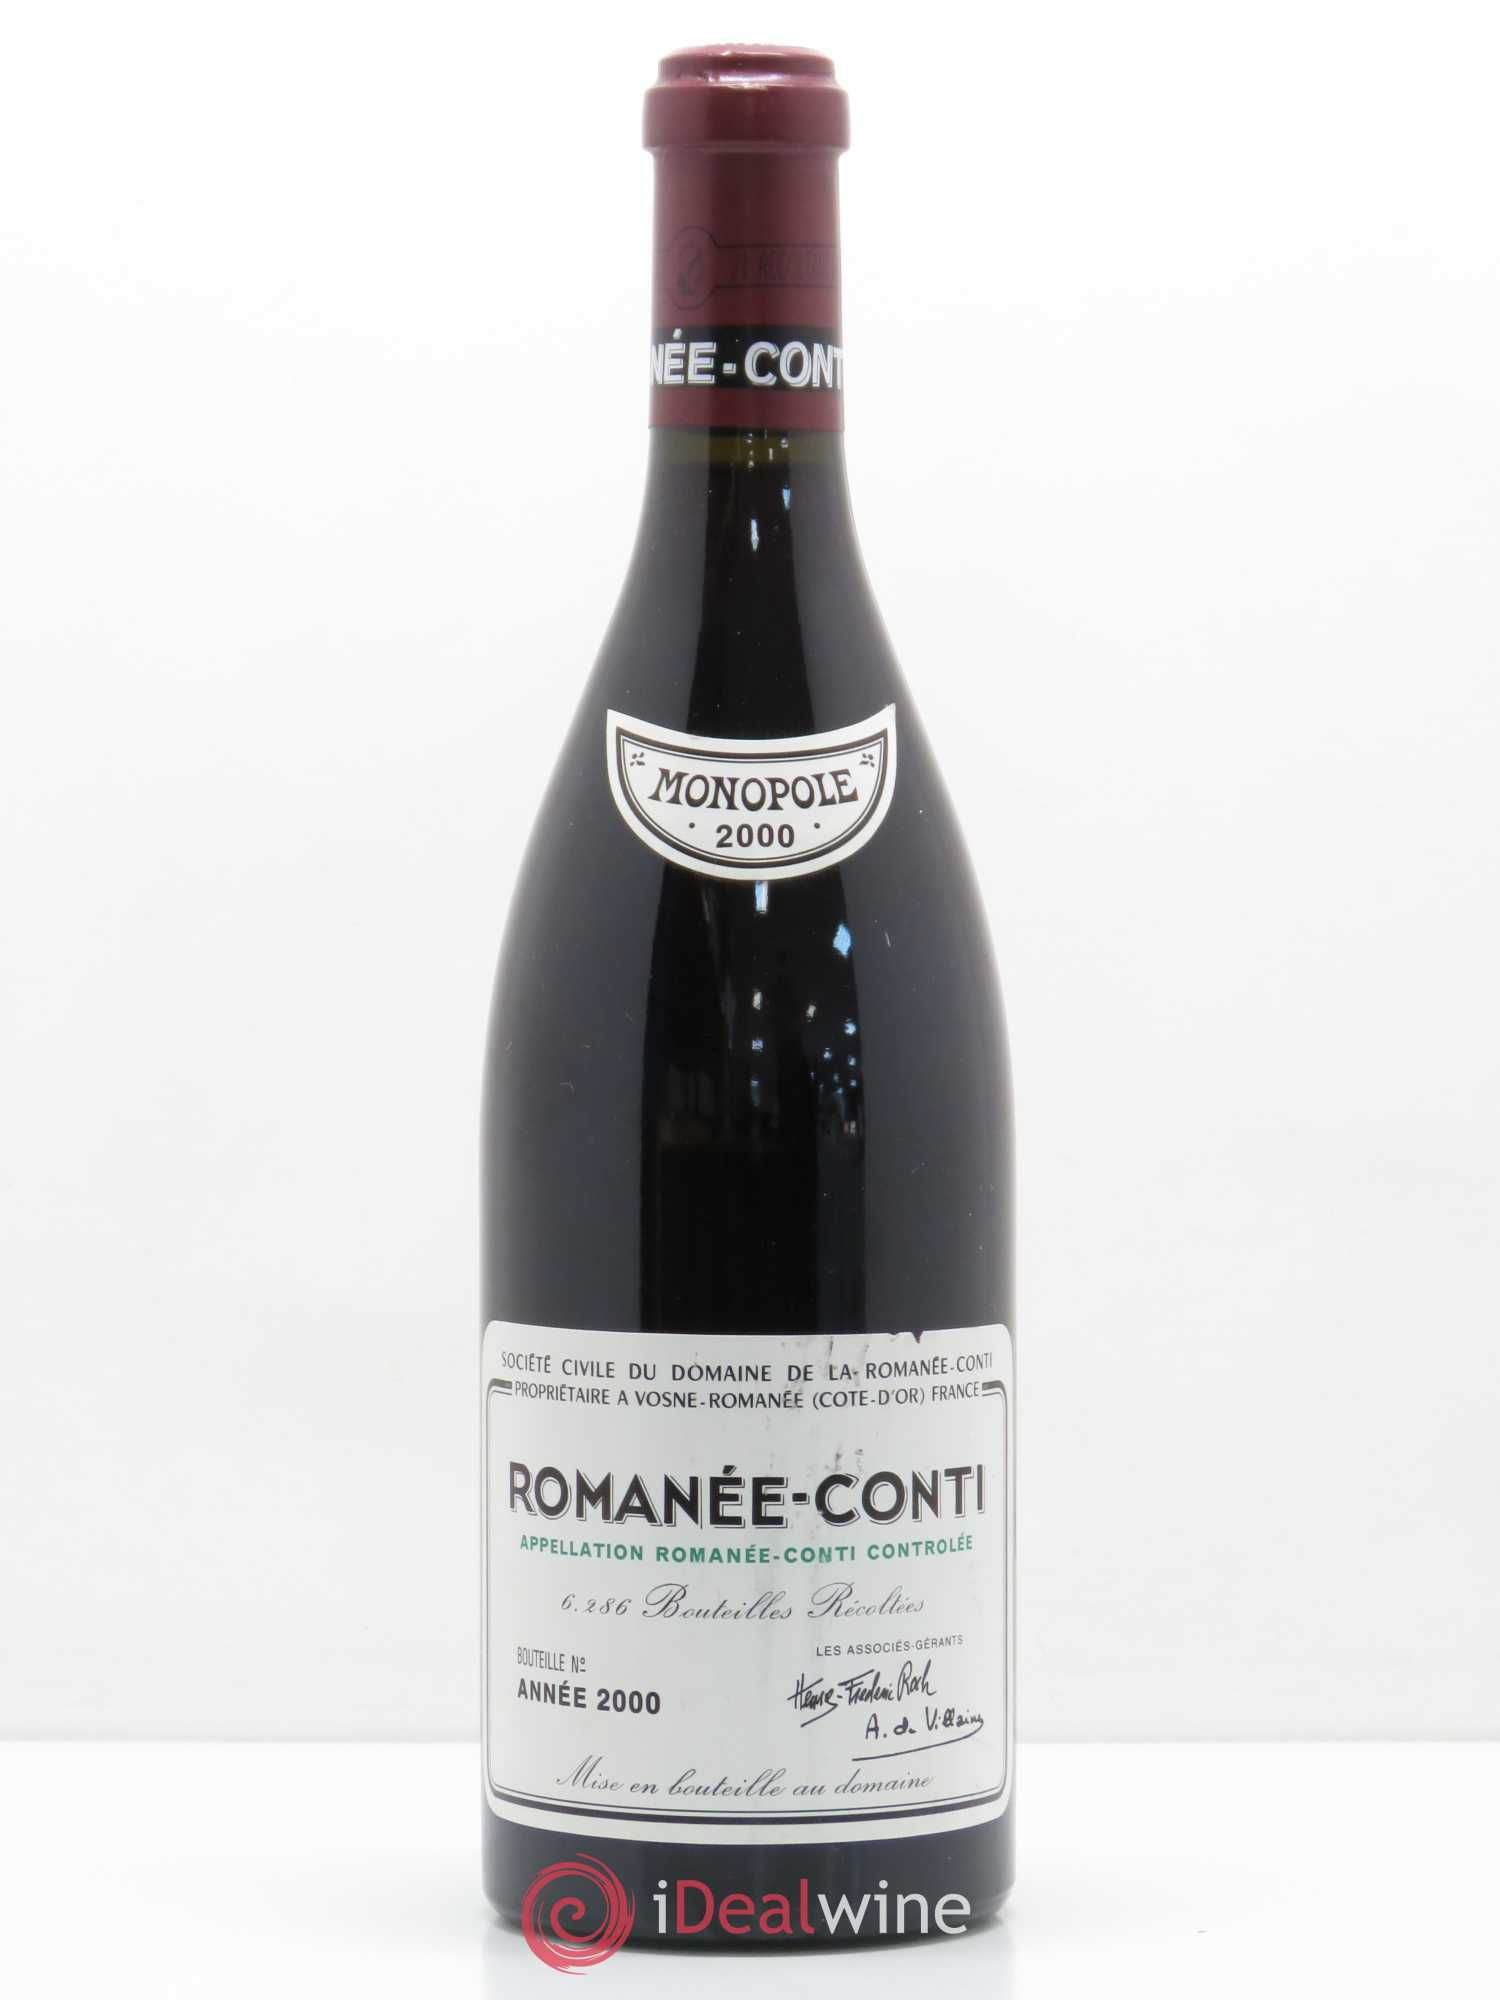 Romanée-Conti Grand Cru Domaine de la Romanée-Conti  2000 - Lot of 1 Bottle